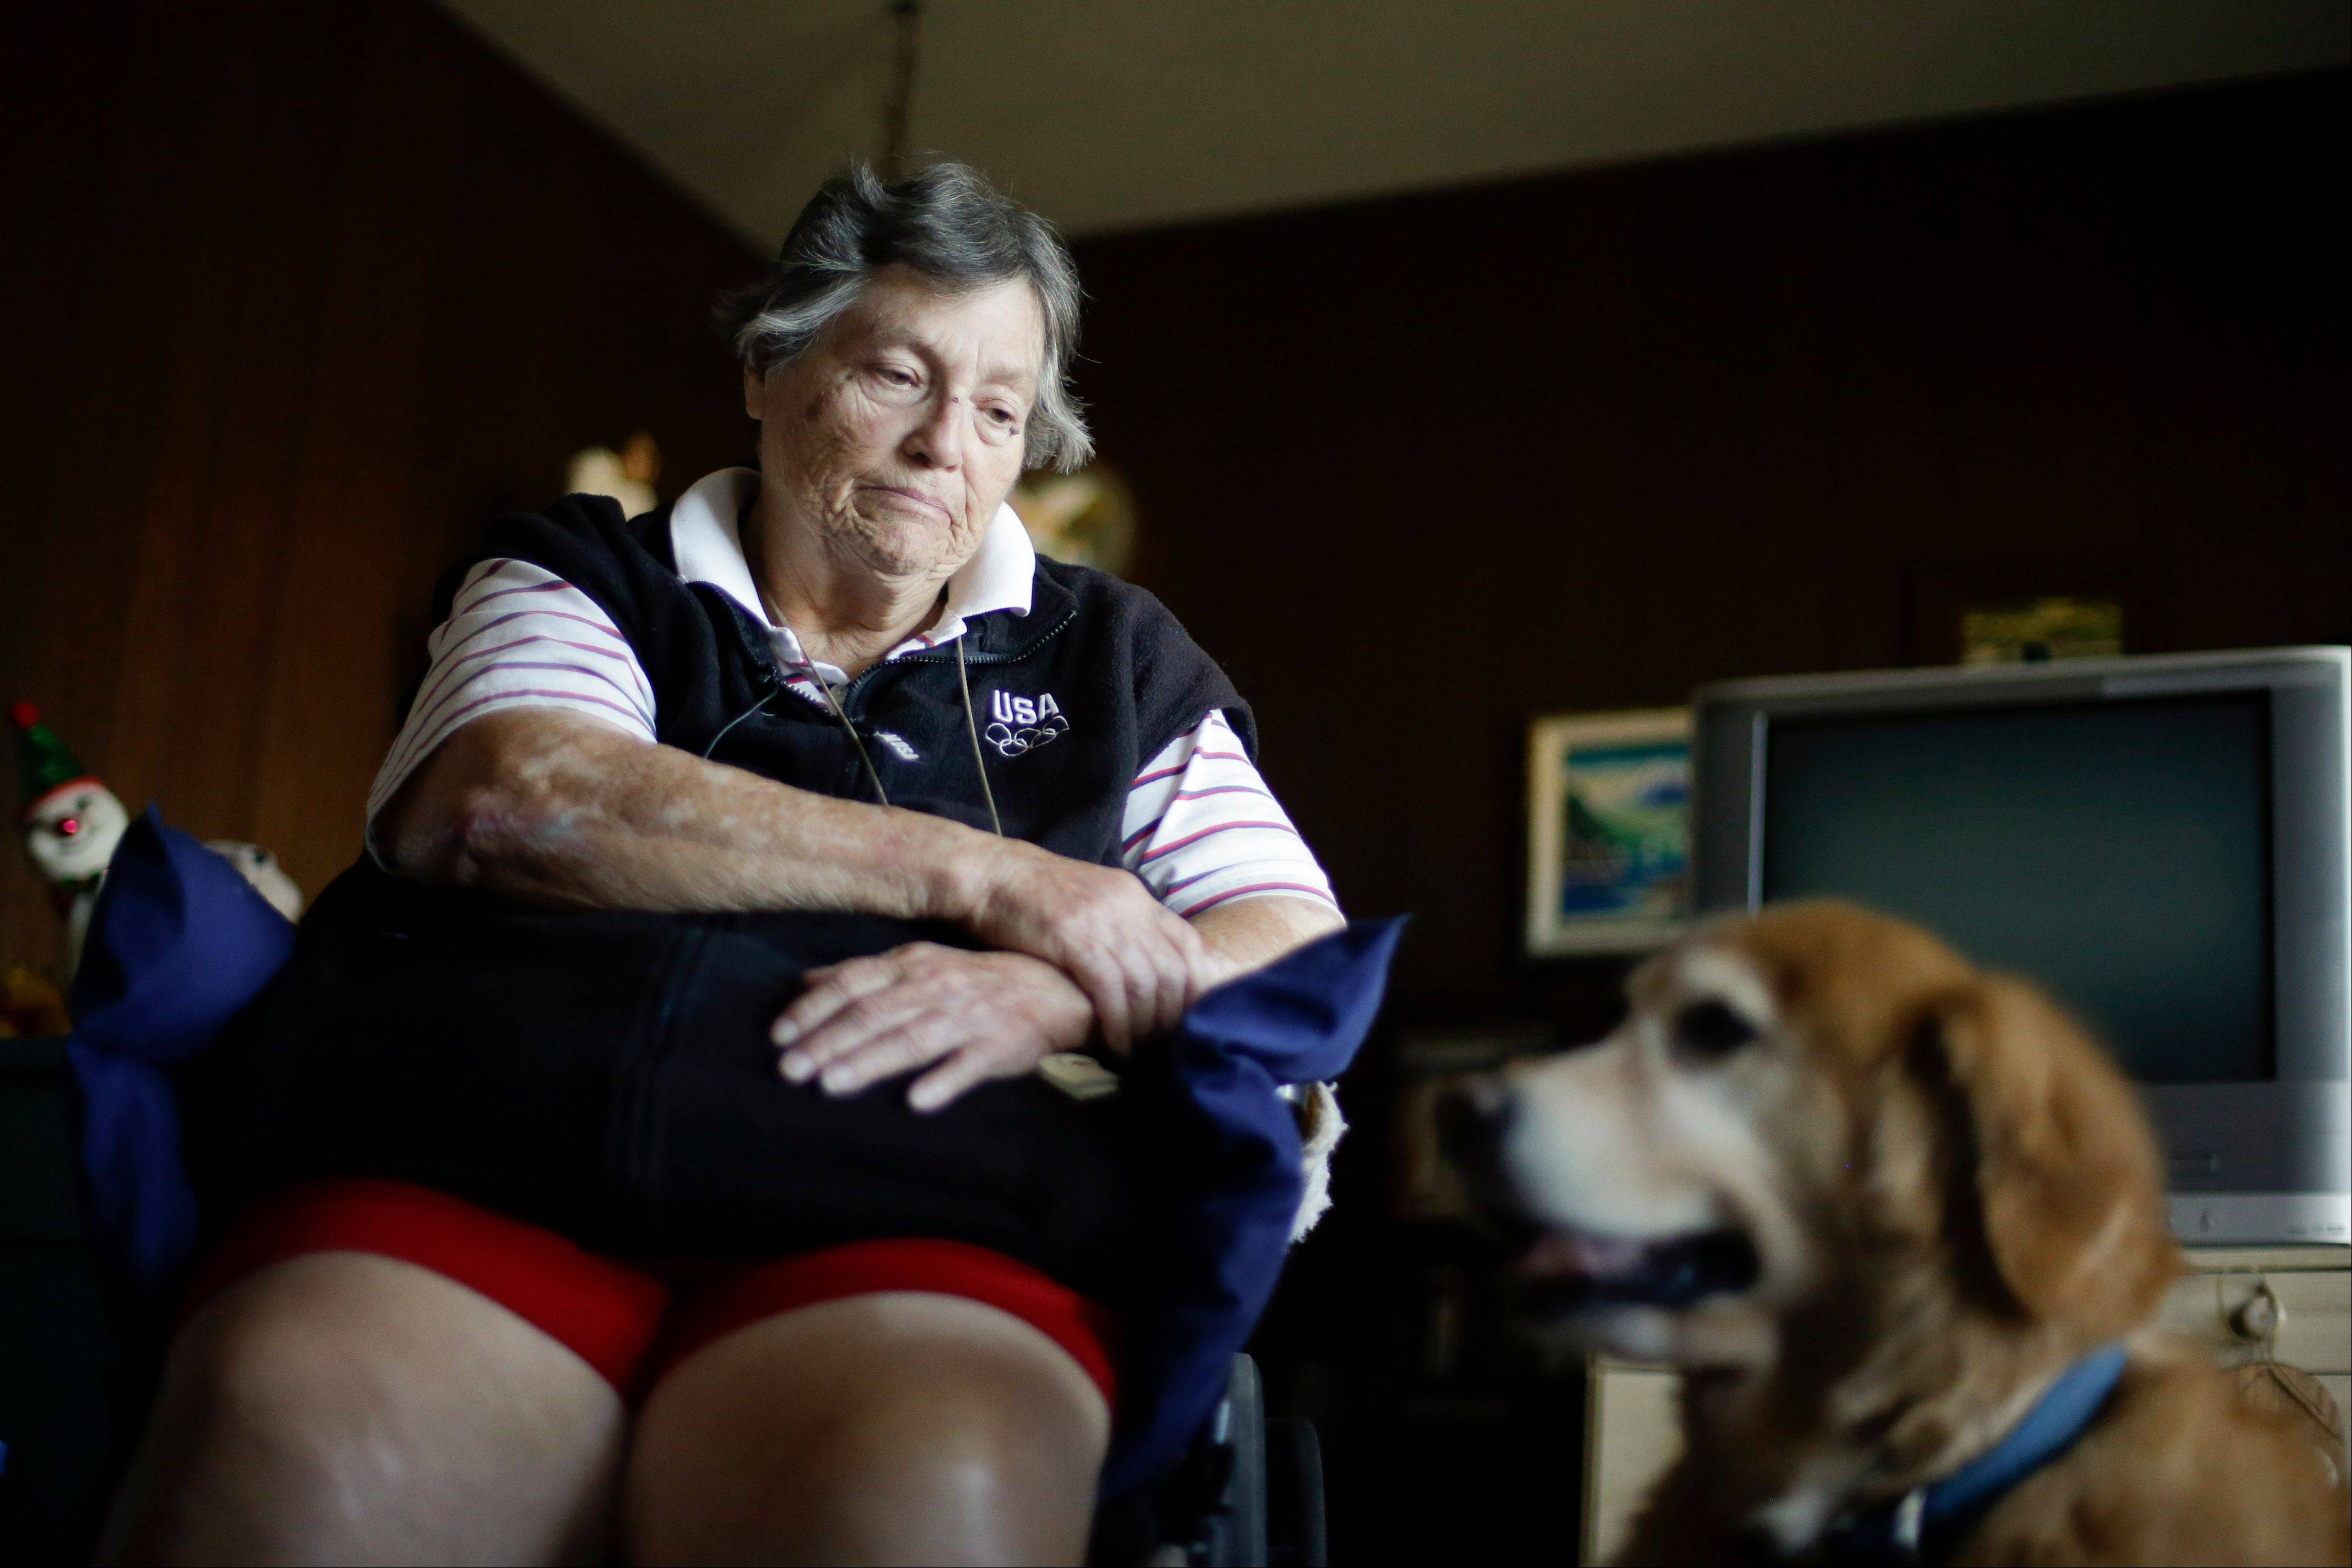 Sherry Scott, who receives dog food for her 10-year-old golden retriever Tootie through the Animeals program, said she would give her lasagna and pork riblets from Meals on Wheels to Tootie if MOW didn�t bring dog food for the dog.